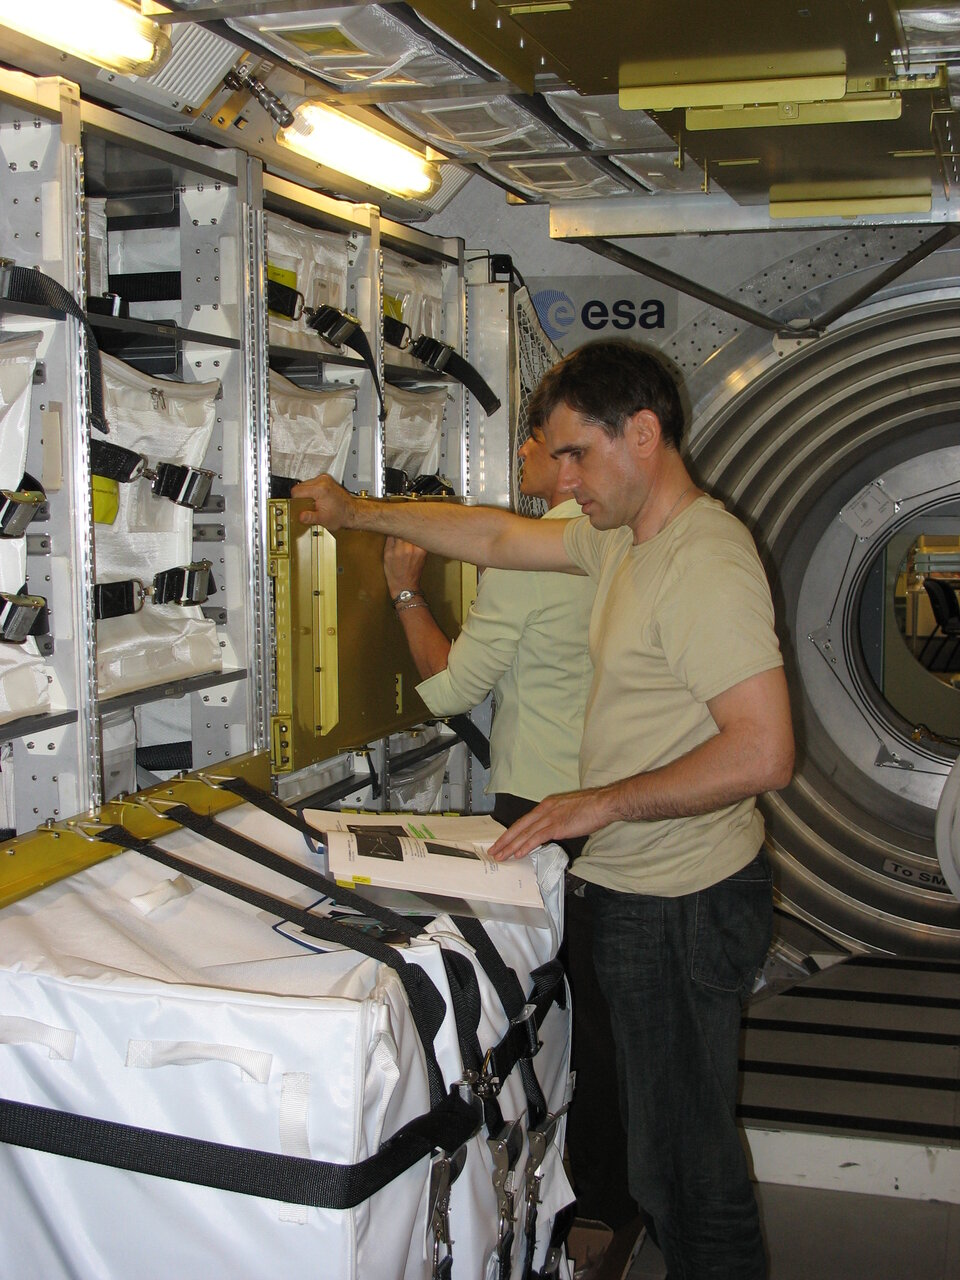 Expedition 16 crew trained for hatch opening and ingress at EAC